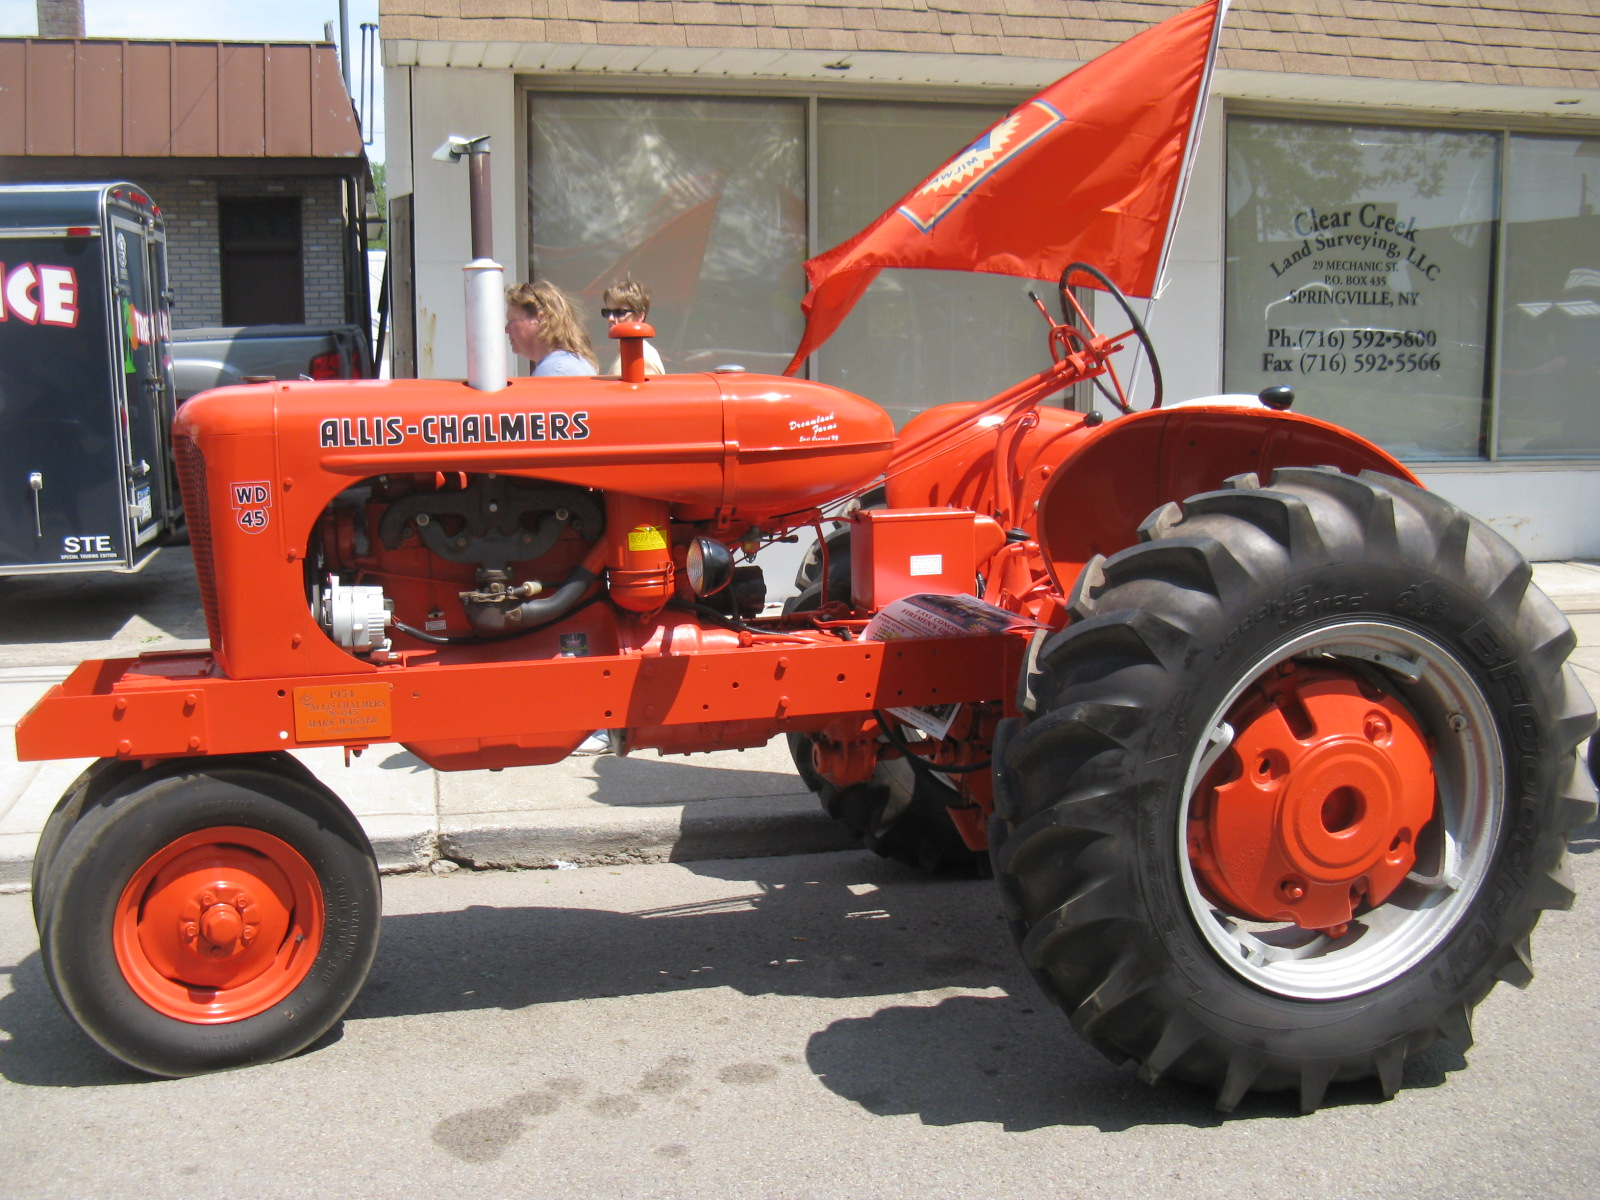 hight resolution of file allis chalmers wd45 jpg